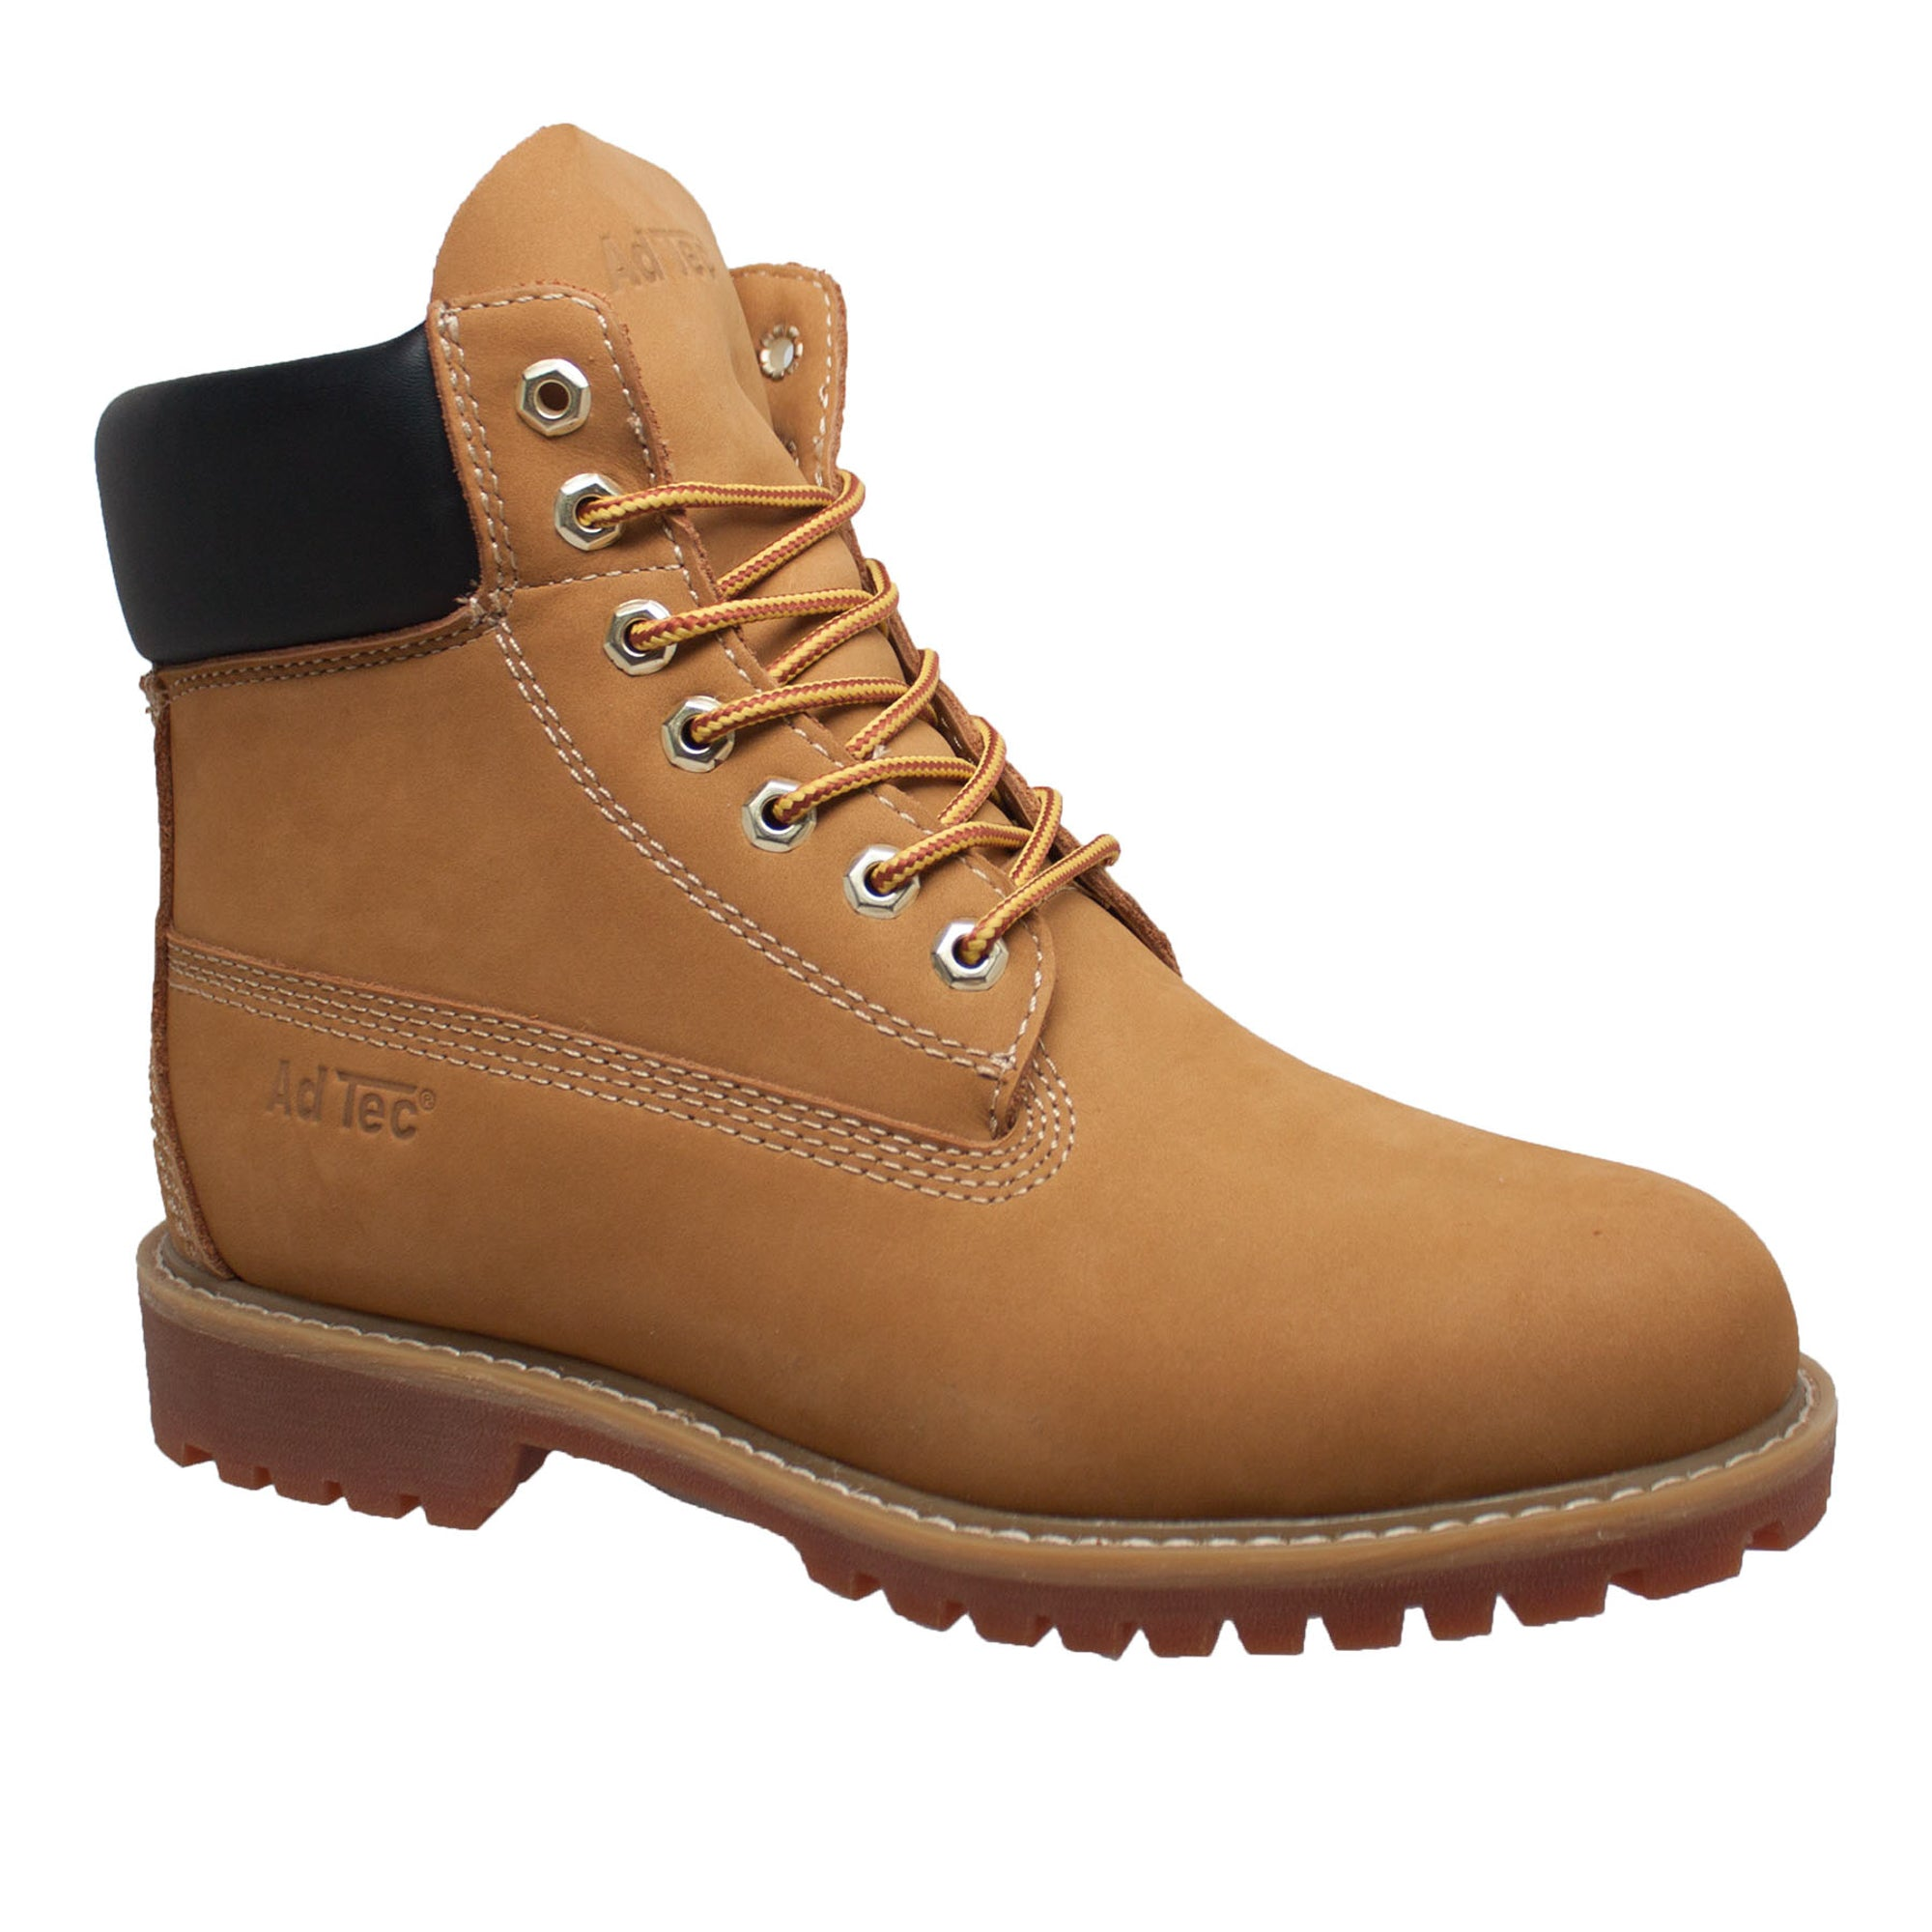 e8a39cdfd49 AdTec Womens Tan 6in WP ST Work Boots Nubuck Leather – The Western ...